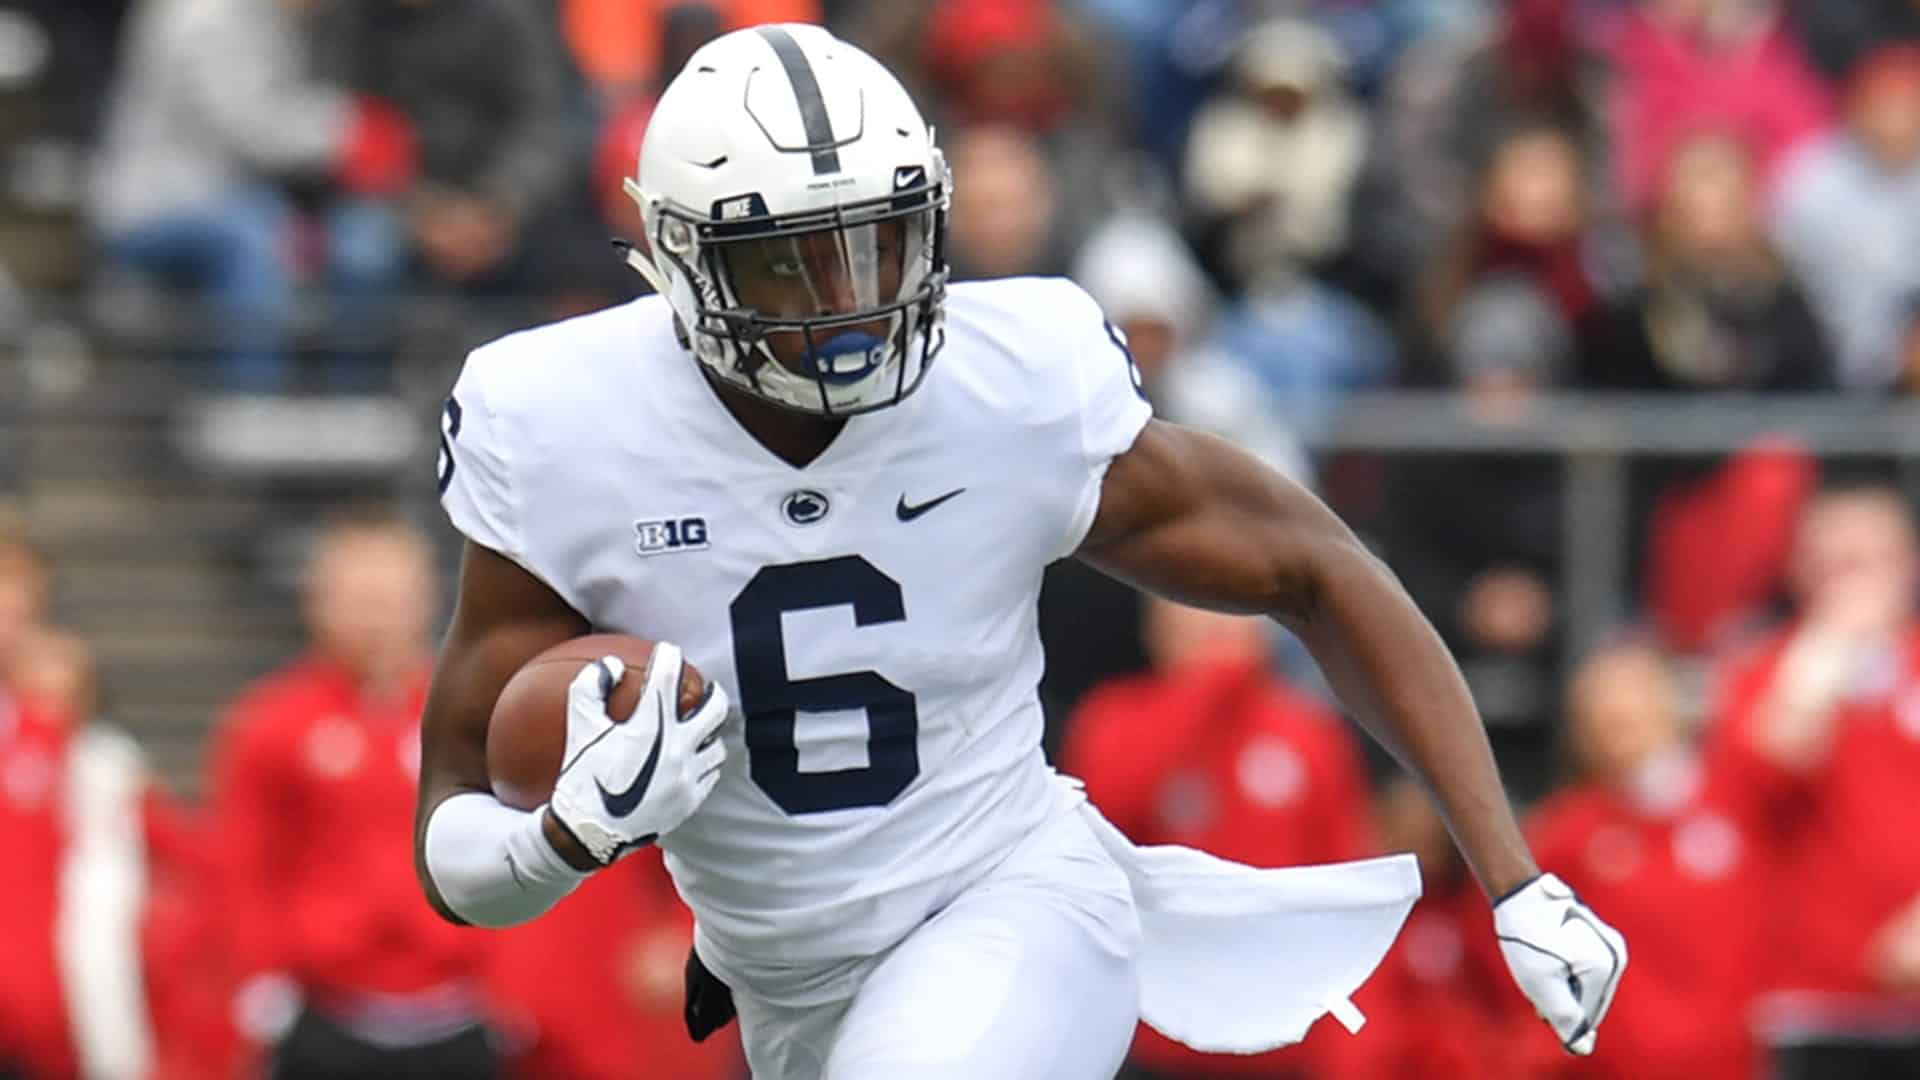 2020 Transfer Portal: Wide receivers looking to improve devy stock